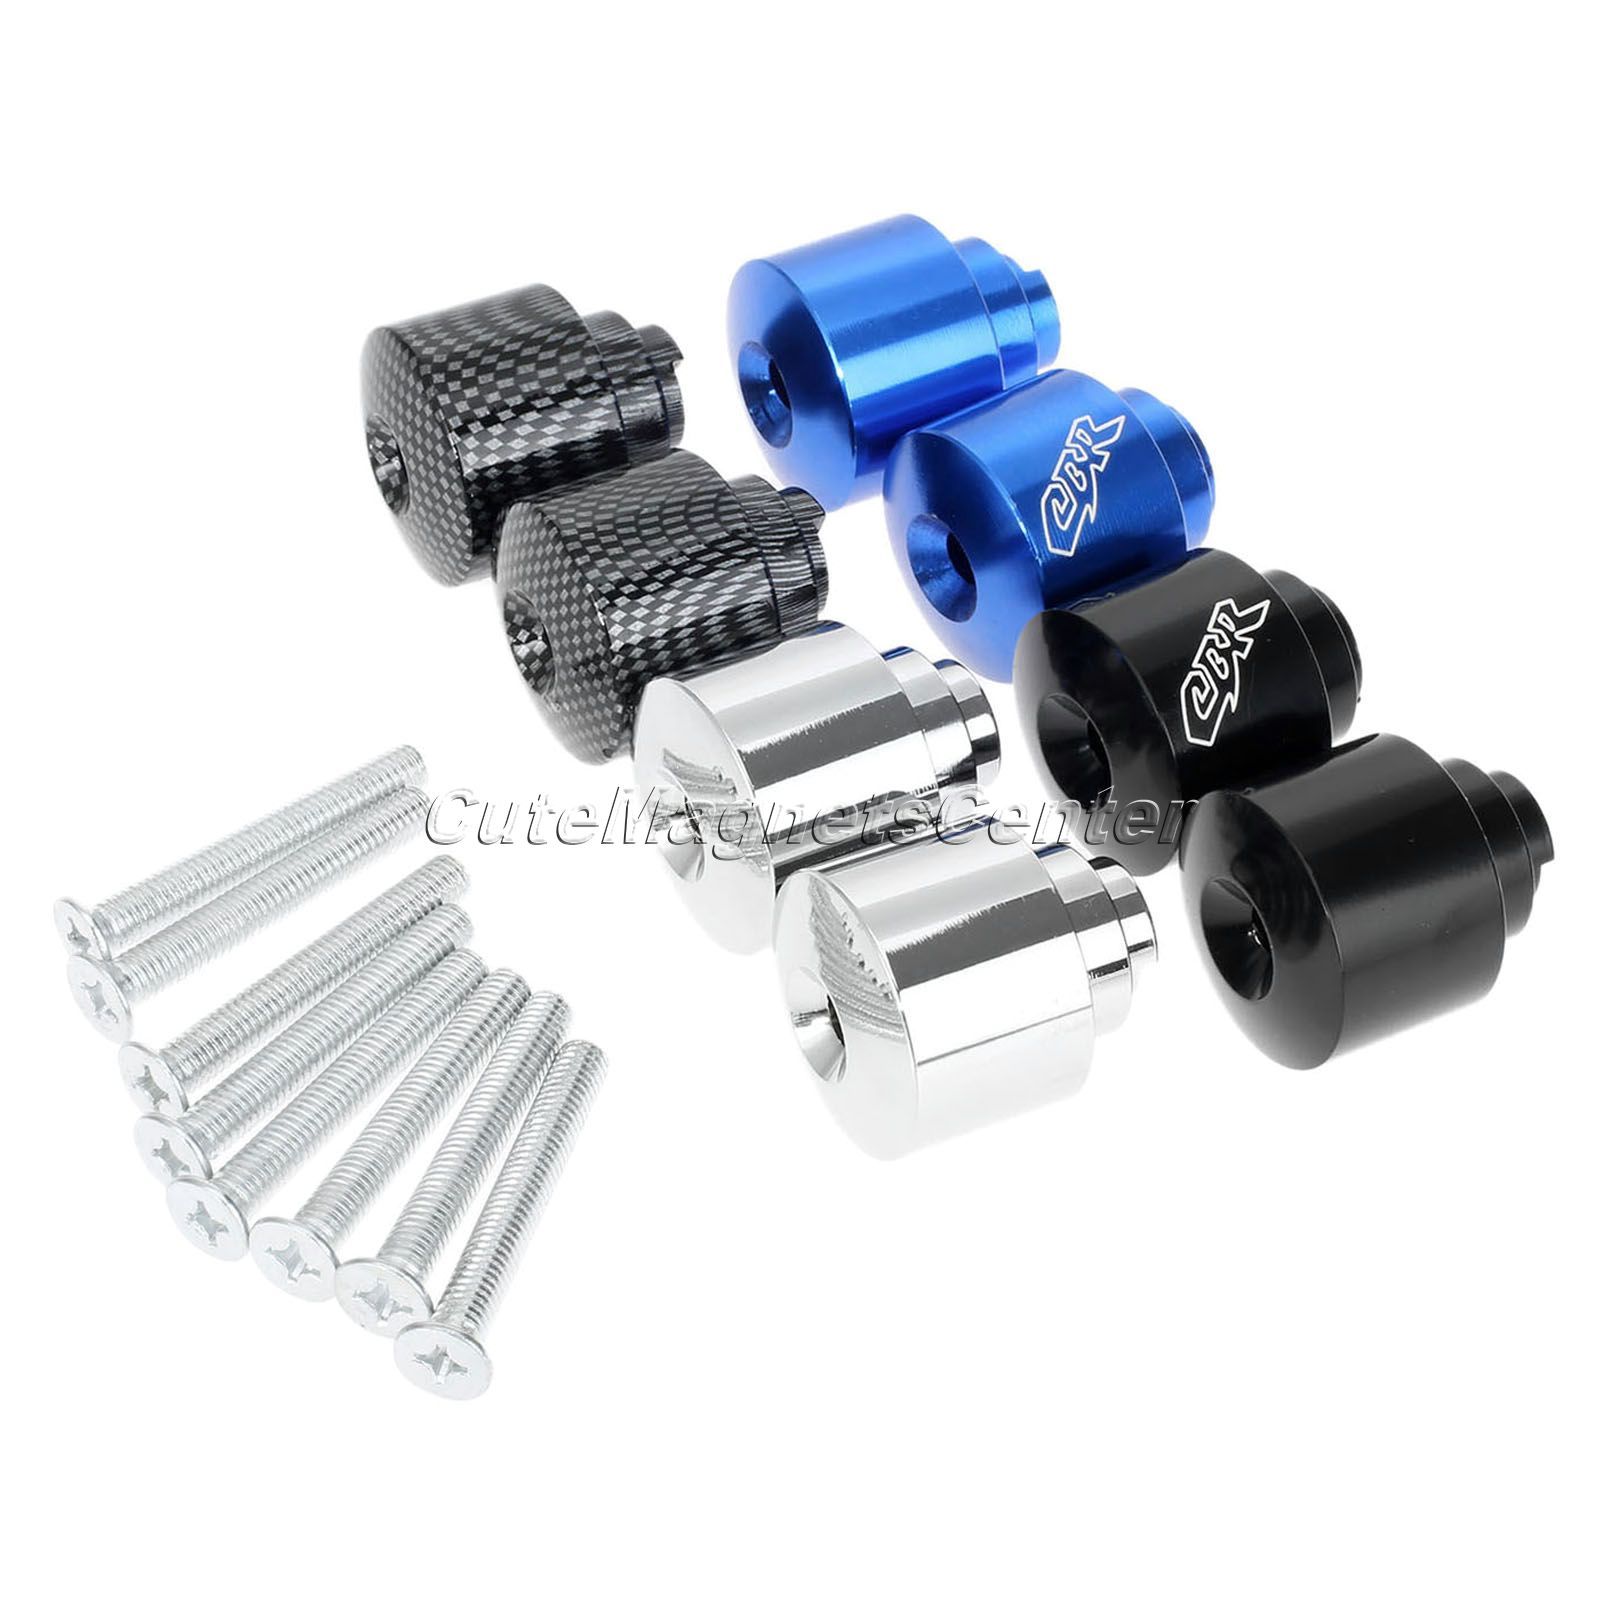 Motorcycle Handle Grips Bar Ends CBR Engraved Handbar For Honda CB 559 CB 919 CBR 600 CBR 600RR 900RR 929RR 954RR 1000RR VFR 800